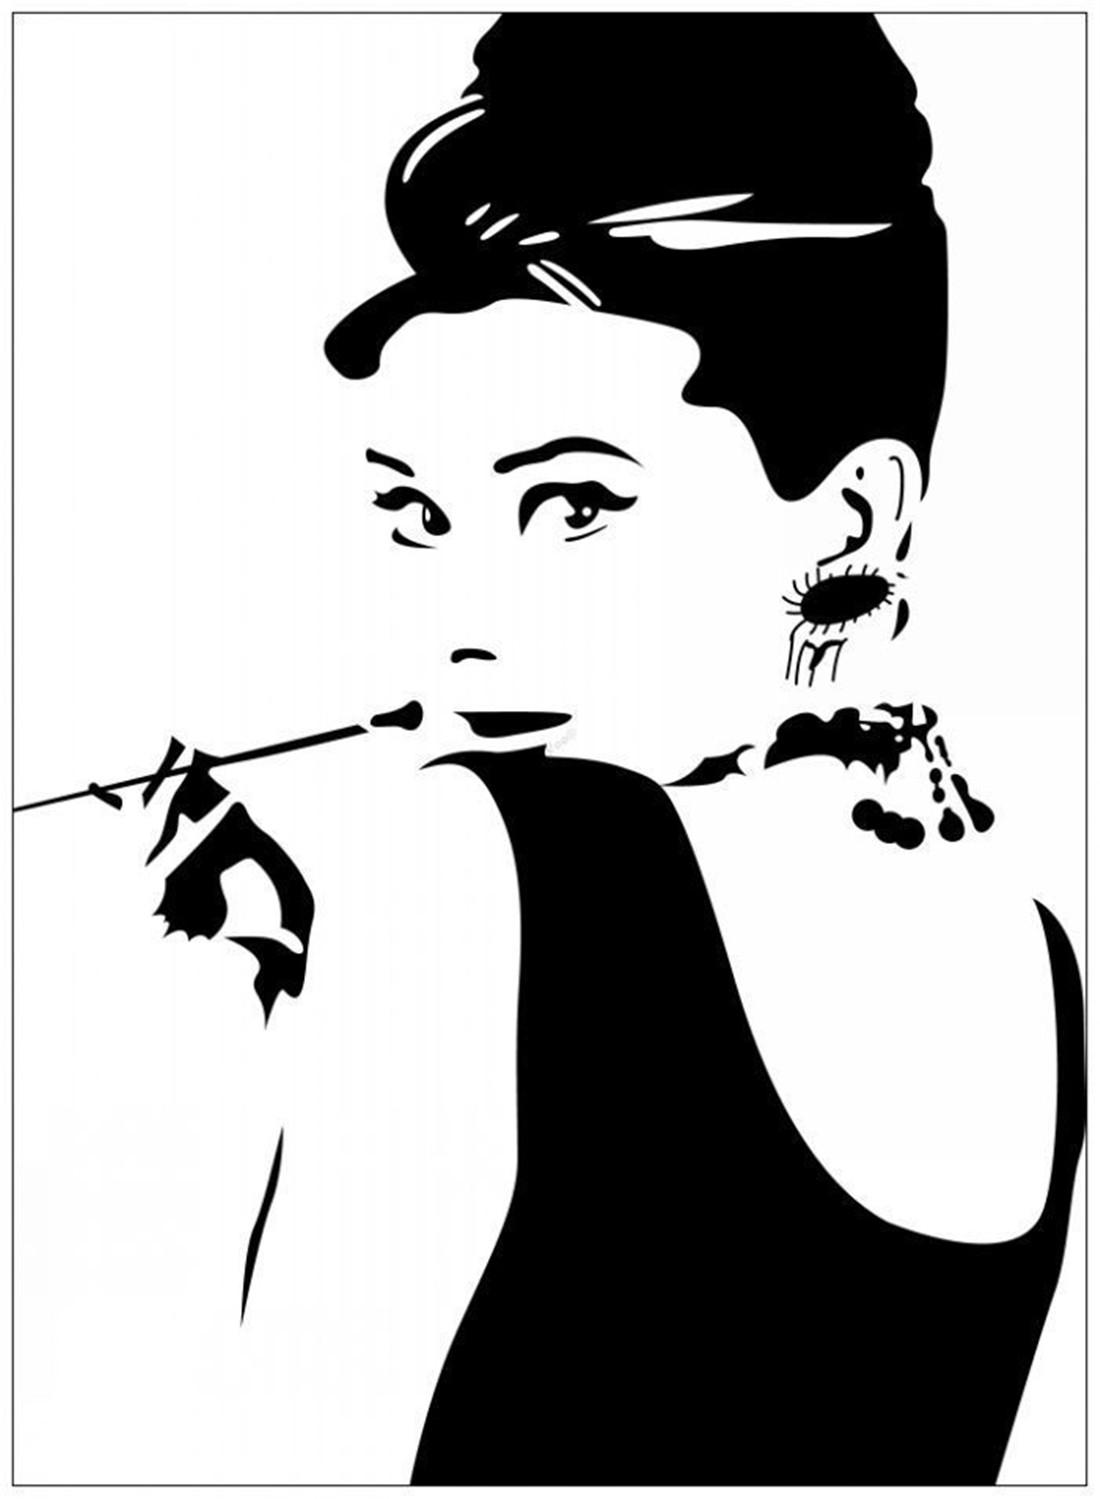 Adesivi Murali Audrey Hepburn.Acquista Audrey Hepburn Rimovibile Sticker Decal Home Art Home Decor